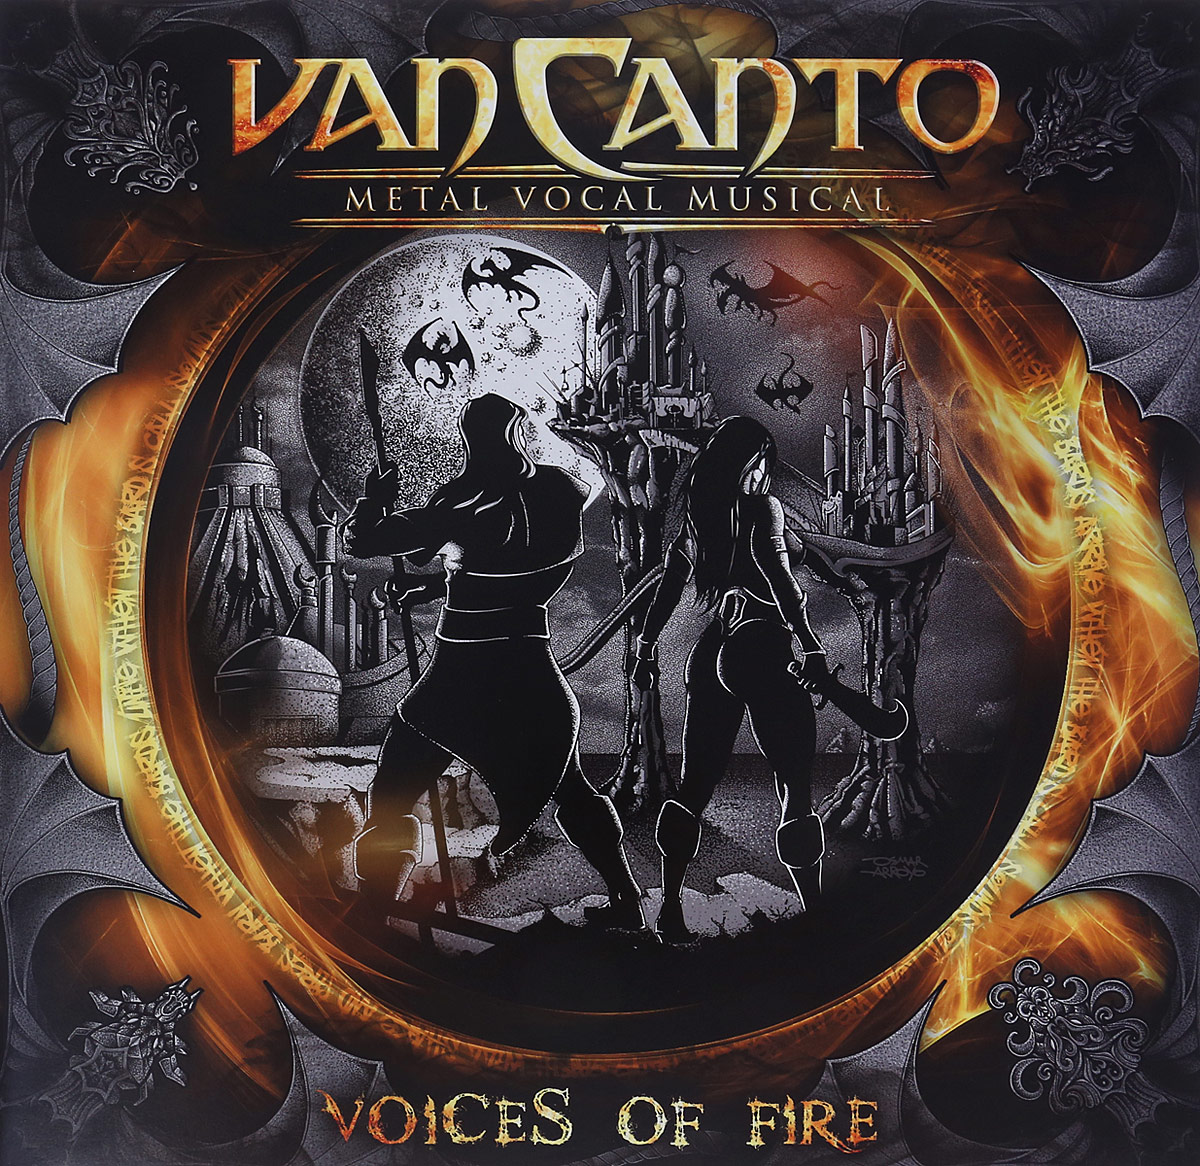 Van Canto Van Canto. Vocal Music. Voices Of Fire (LP) van canto van canto voices of fire